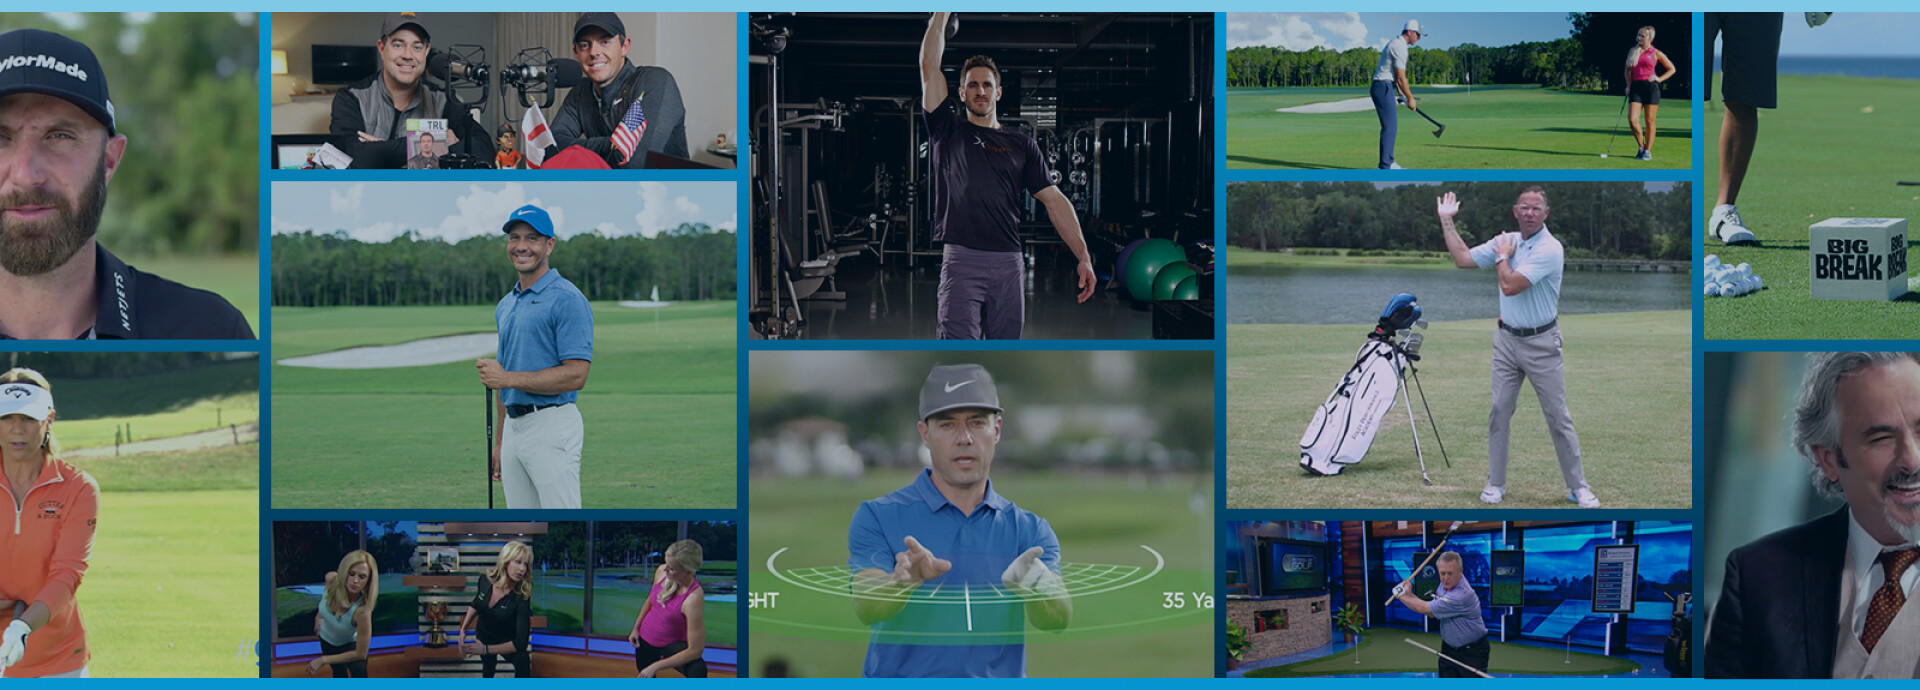 Lead Image: GOLFPASS Video